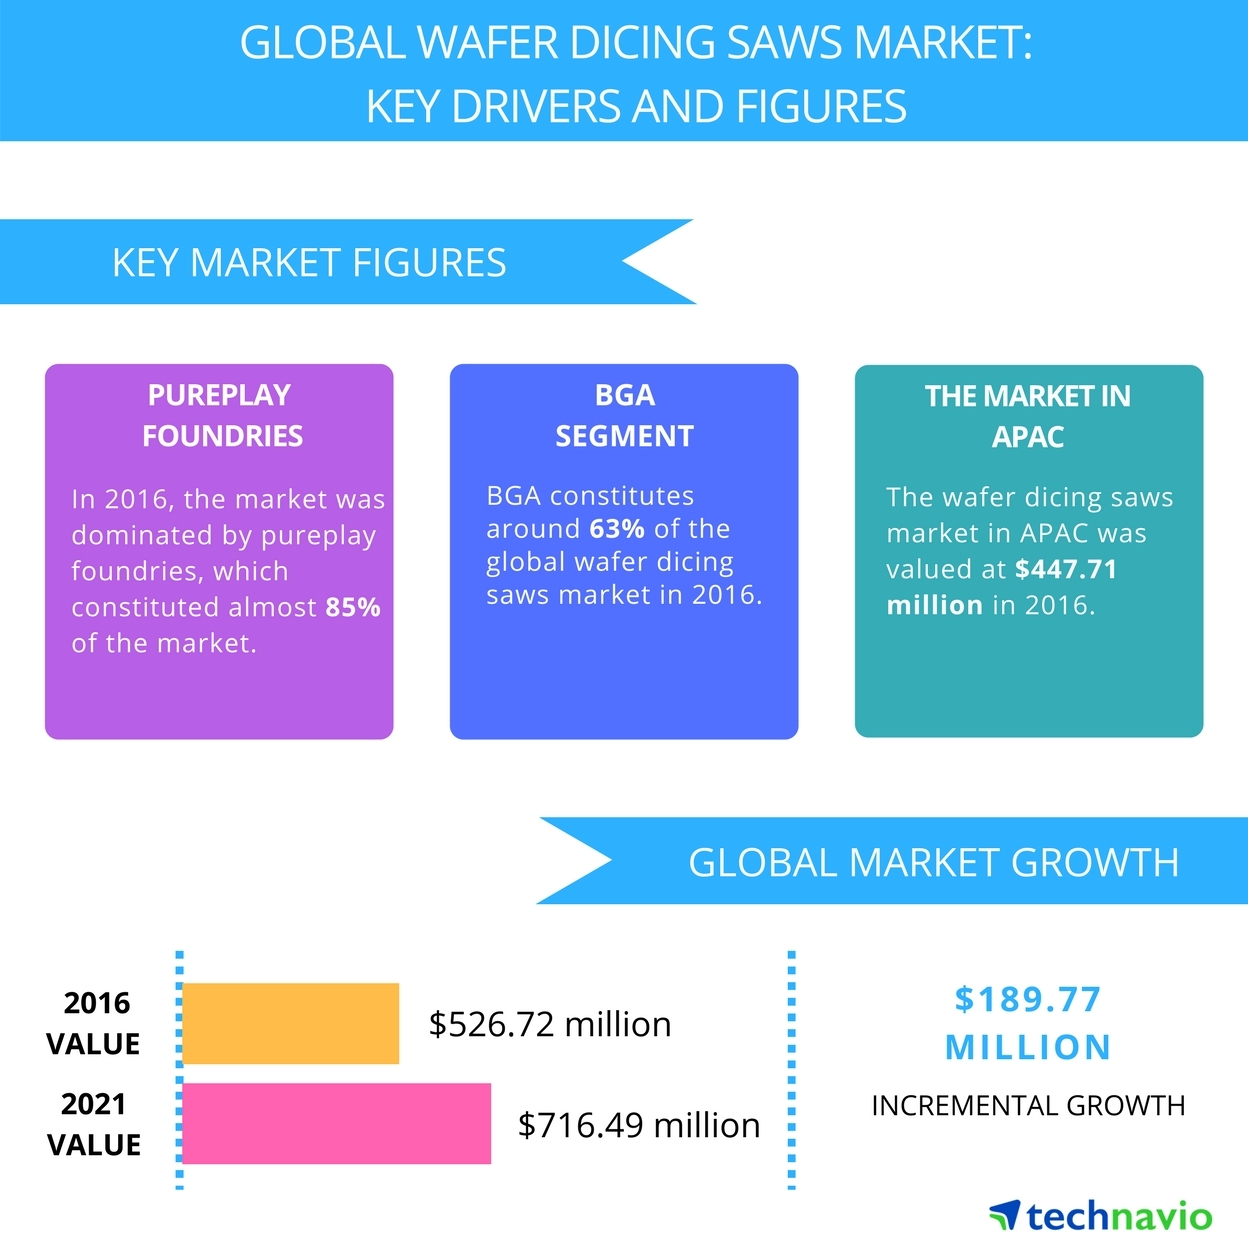 Technavio has published a new report on the global wafer dicing saws market from 2017-2021. (Graphic: Business Wire)